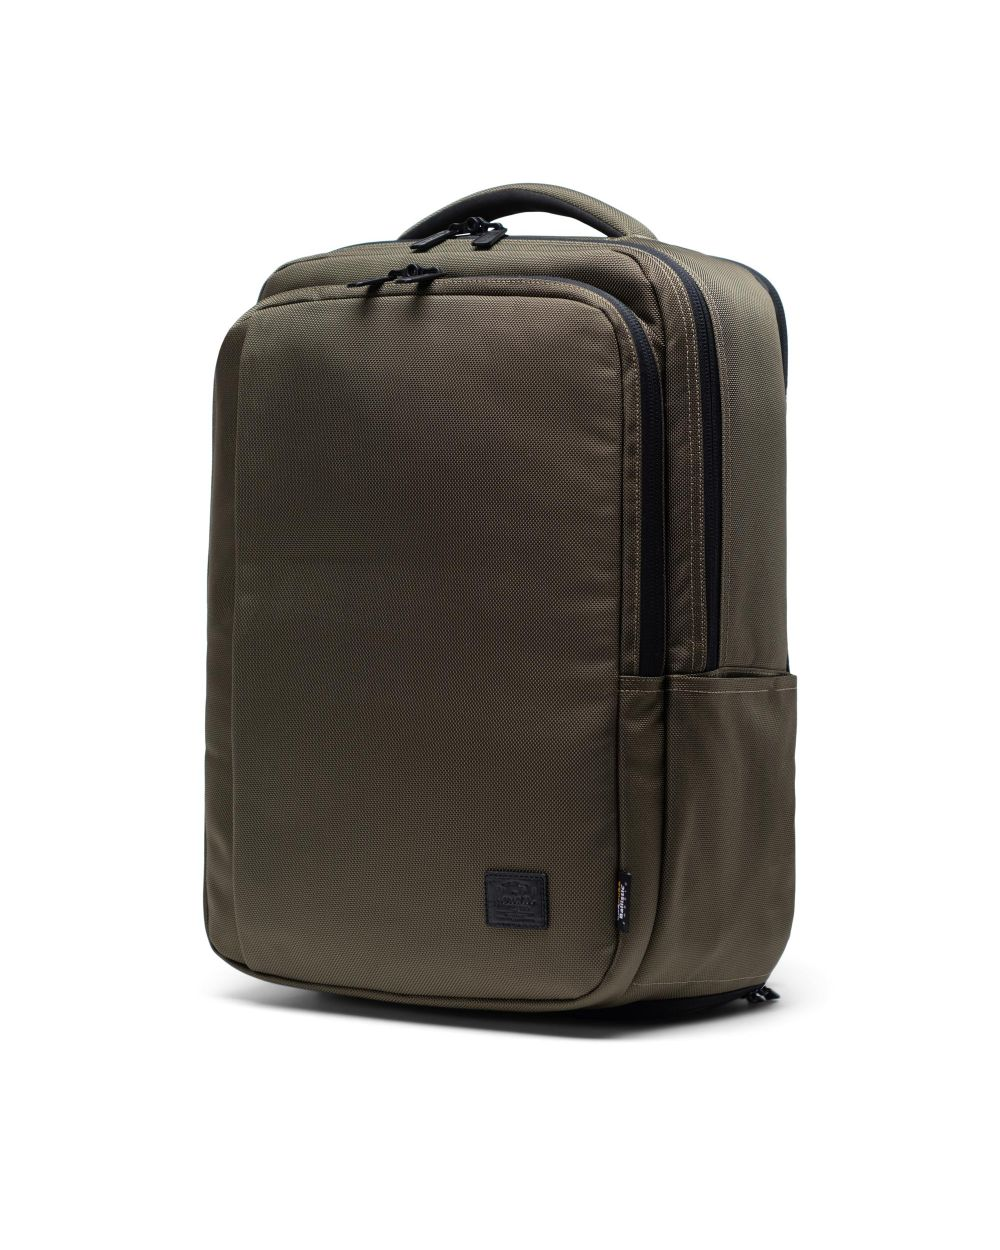 Travel backpack in grey